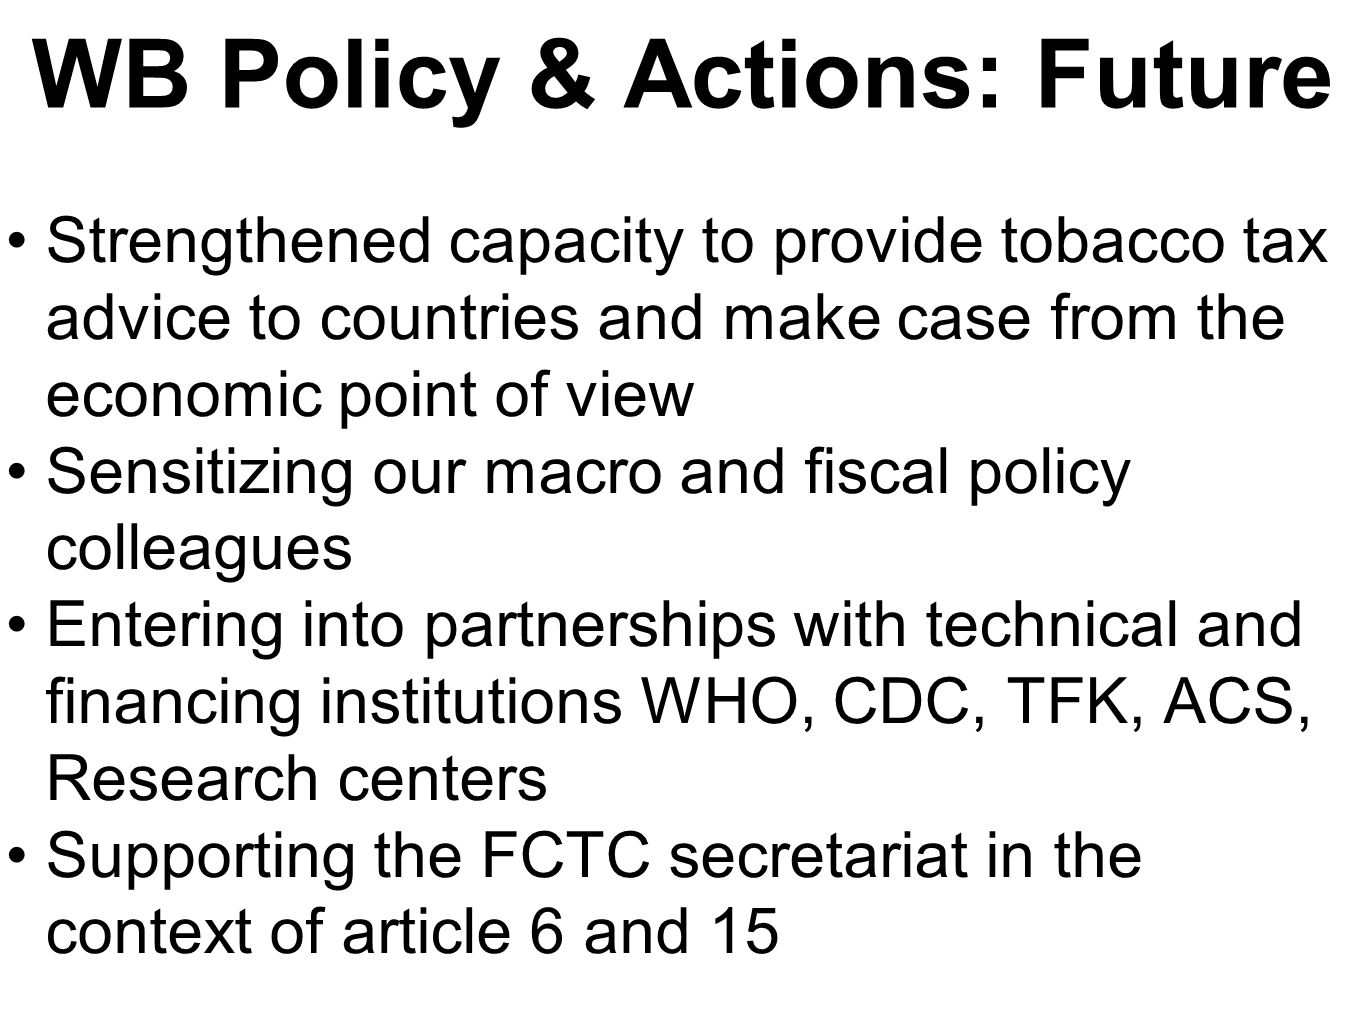 WB Policy & Actions: Future